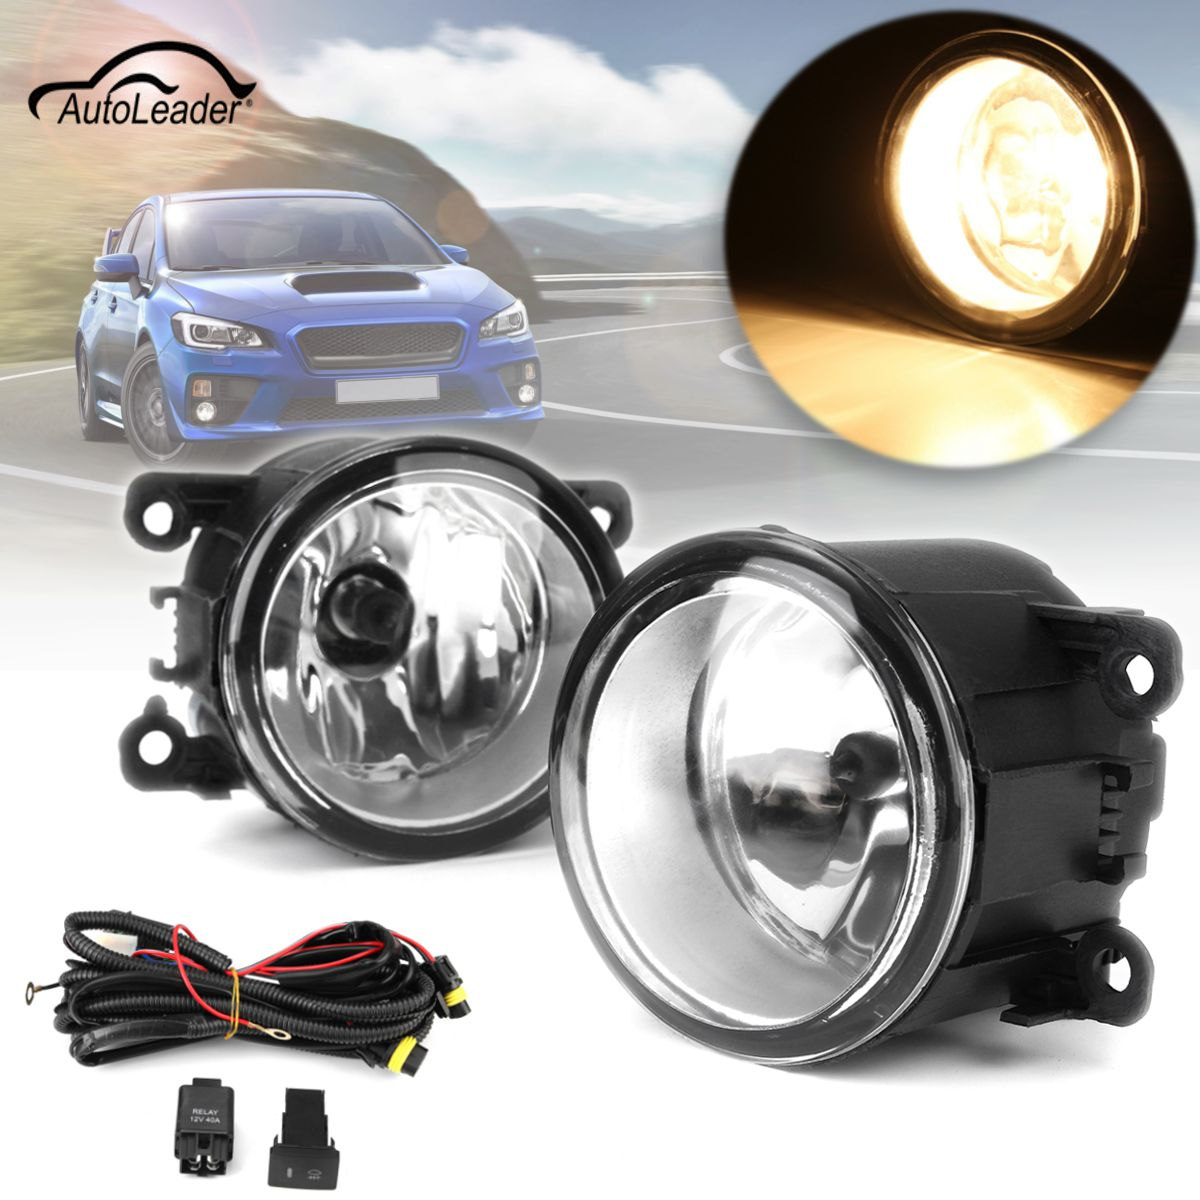 For Subaru Impreza/WRX/WRX STI/XV 1 Pair H11 Car Front Fog Light Clear Lens With Wiring Kit 250v 10a 40c 45 50 55 60 65 70 75 80 85 110c 135c degree ksd 9700 temperature controller switch thermal protector normally close